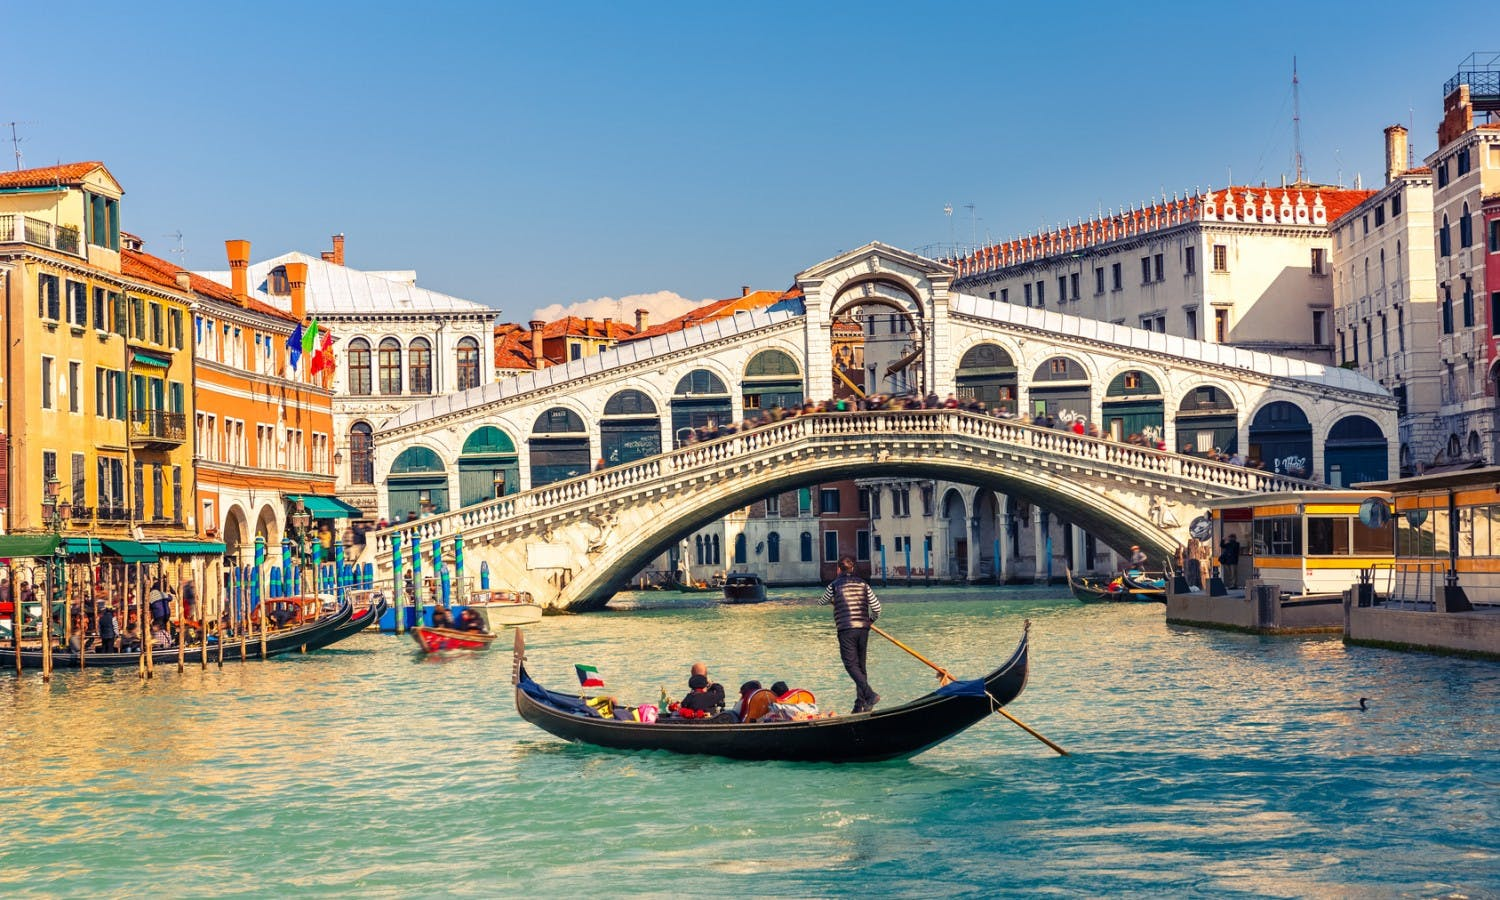 Rialto Bridge in Venice_Fotolia_63839278.jpg